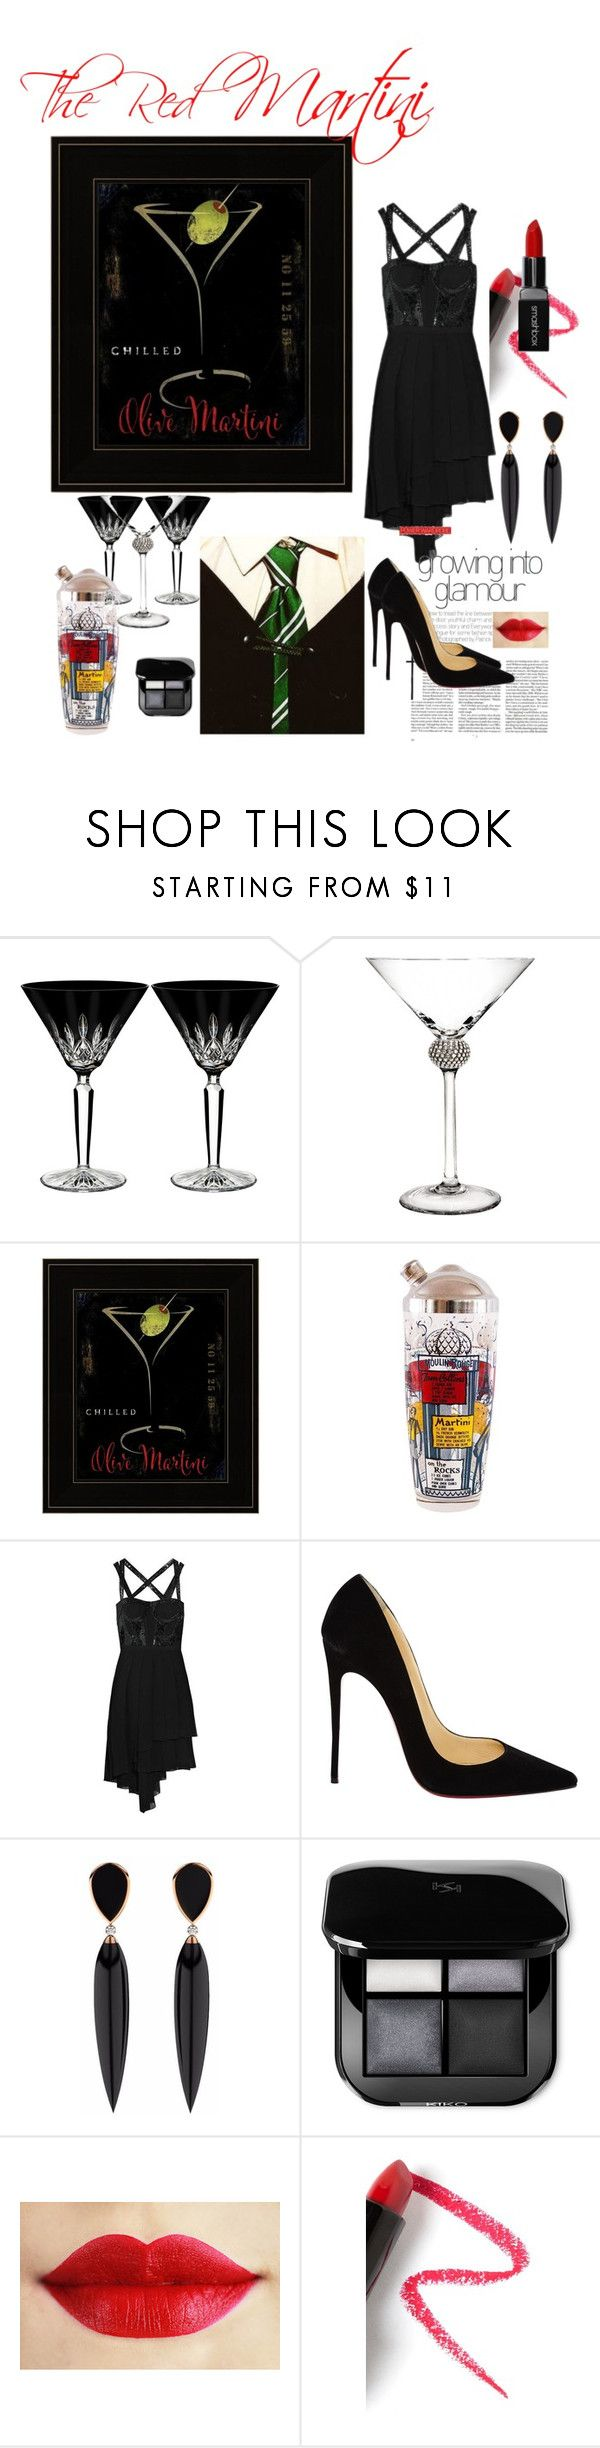 """""""The Red Martini"""" by rosalindmarshall ❤ liked on Polyvore featuring Waterford, Anchor Hocking, Versace, Christian Louboutin, Lapcos and Smashbox"""